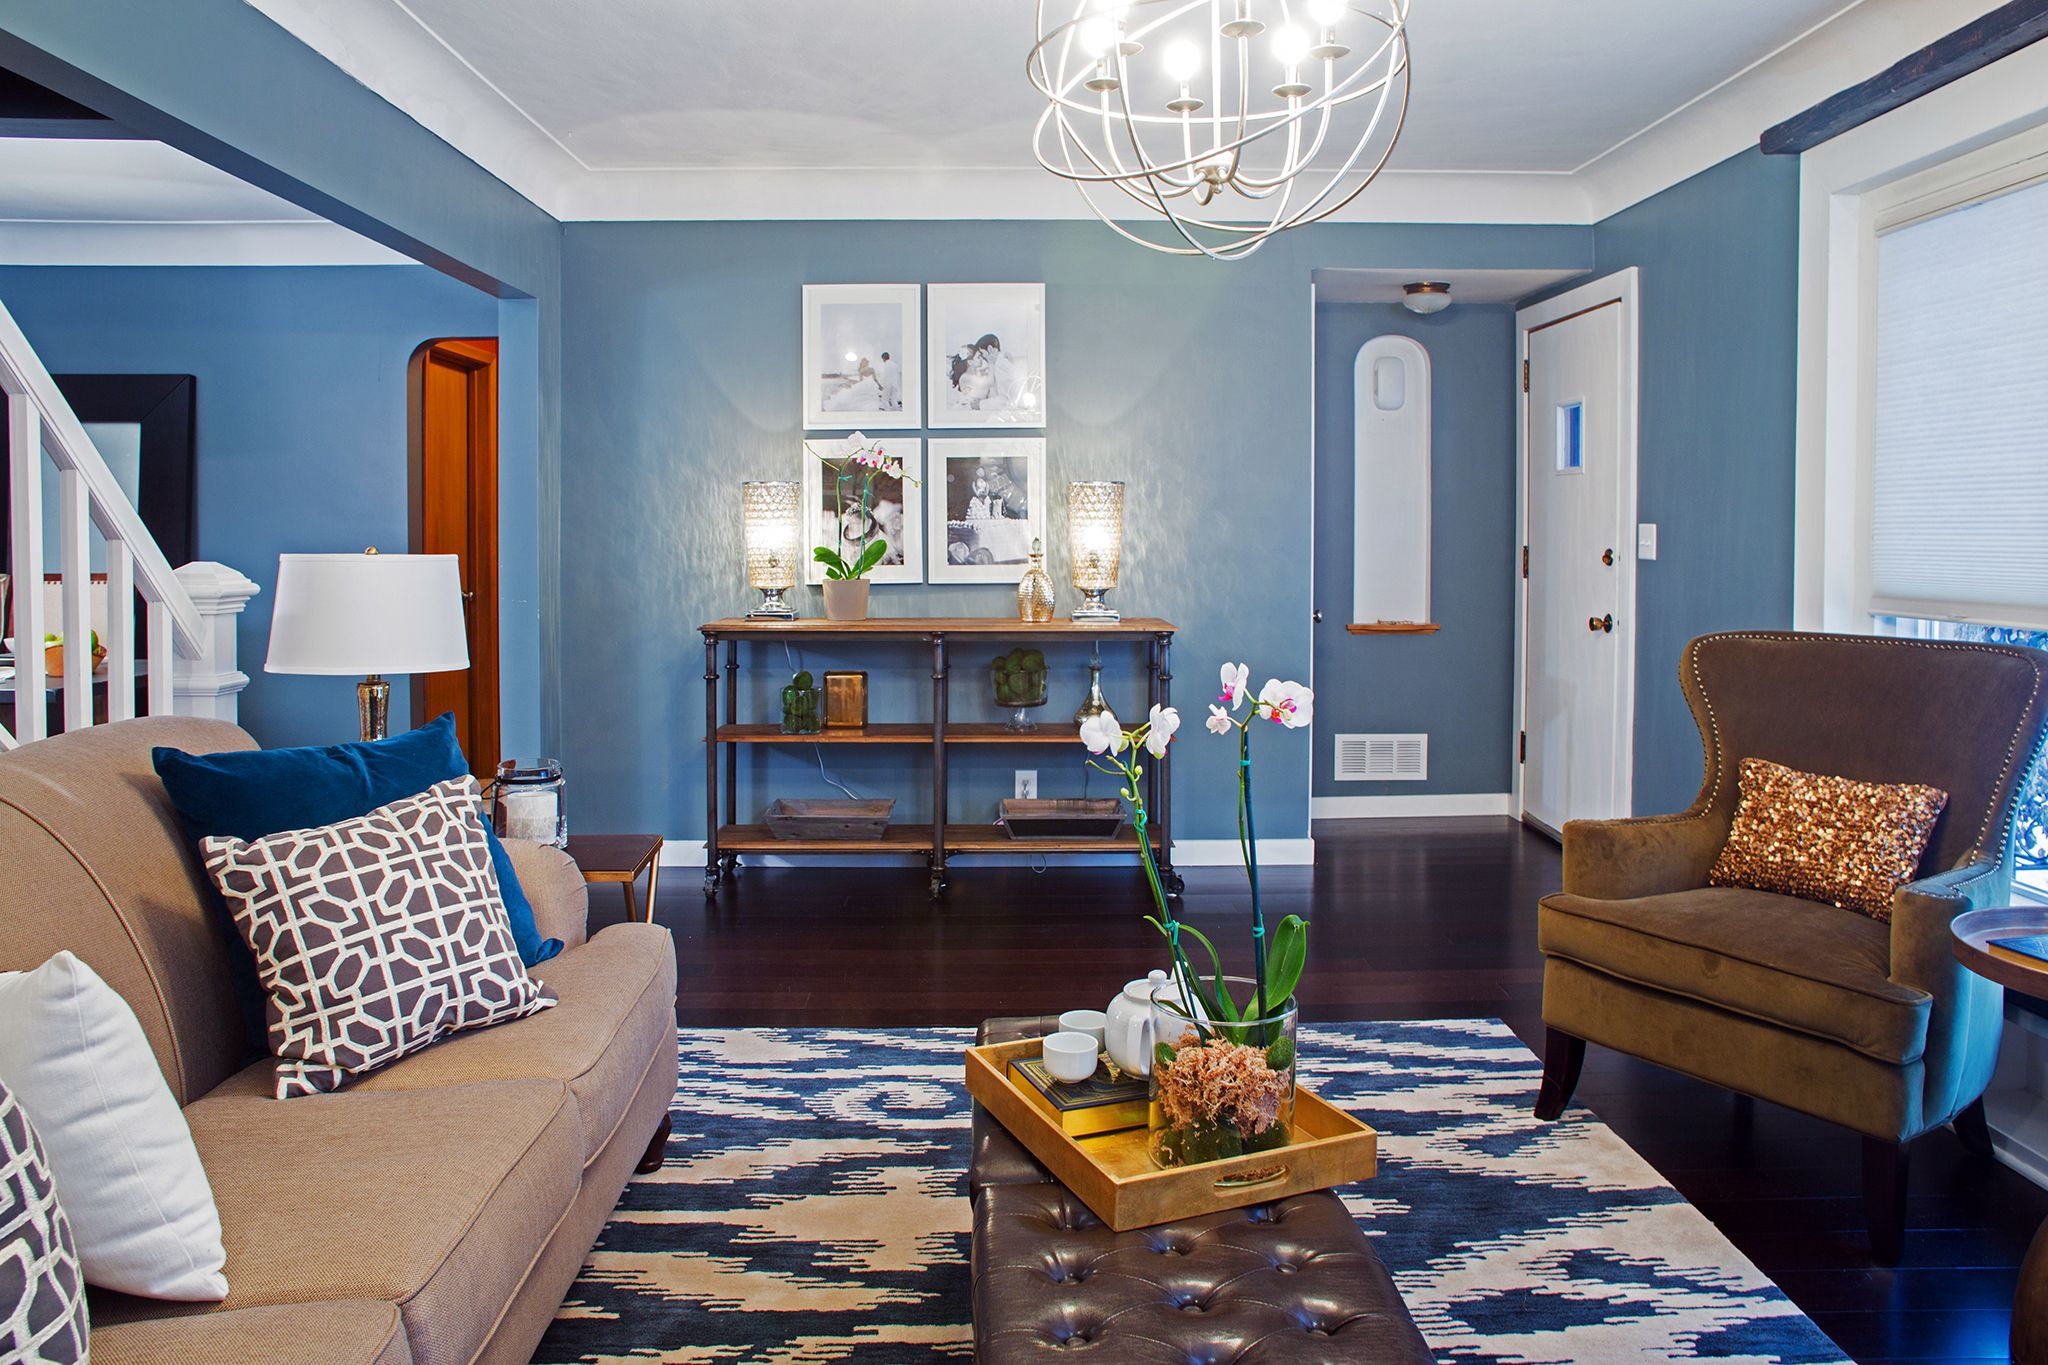 Paint color ideas for living room accent wall and living room wall - Living Room Beautiful Paint Colors For Accent Wall Amazing In Teal Painted Blue Geometric Modern Rug